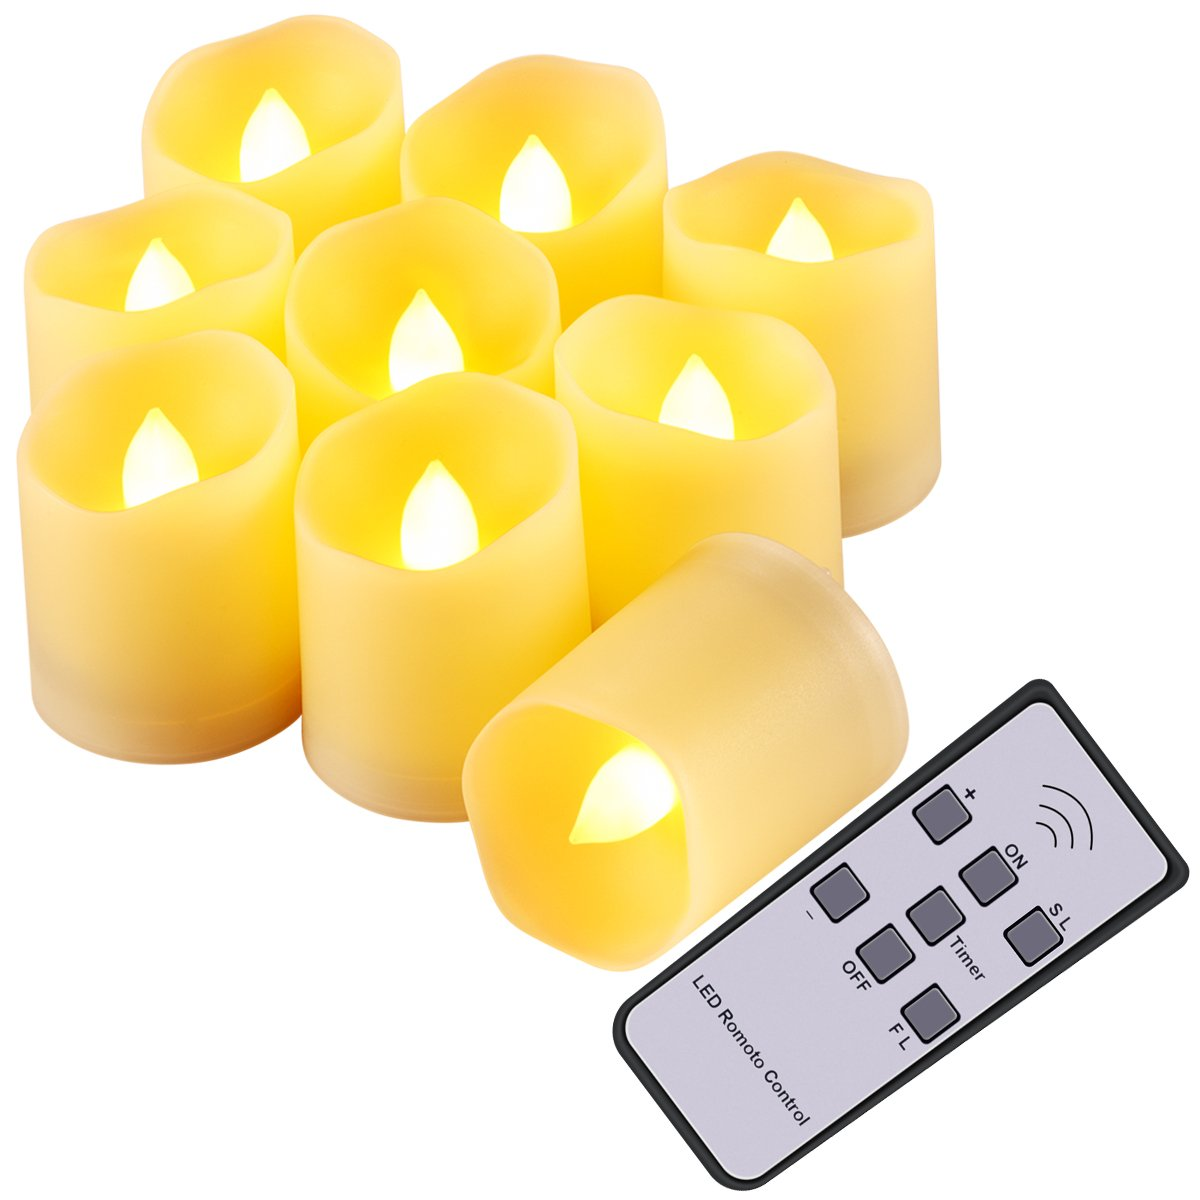 AMIR Flameless Candles, Flickering LED Tea Light Candles, Remote Votive Candles with 5 Brightness, 2 Speeds, Timer & Battery for Seasonal & Festival Celebration, Party & Wedding Decoration (9 Pack)